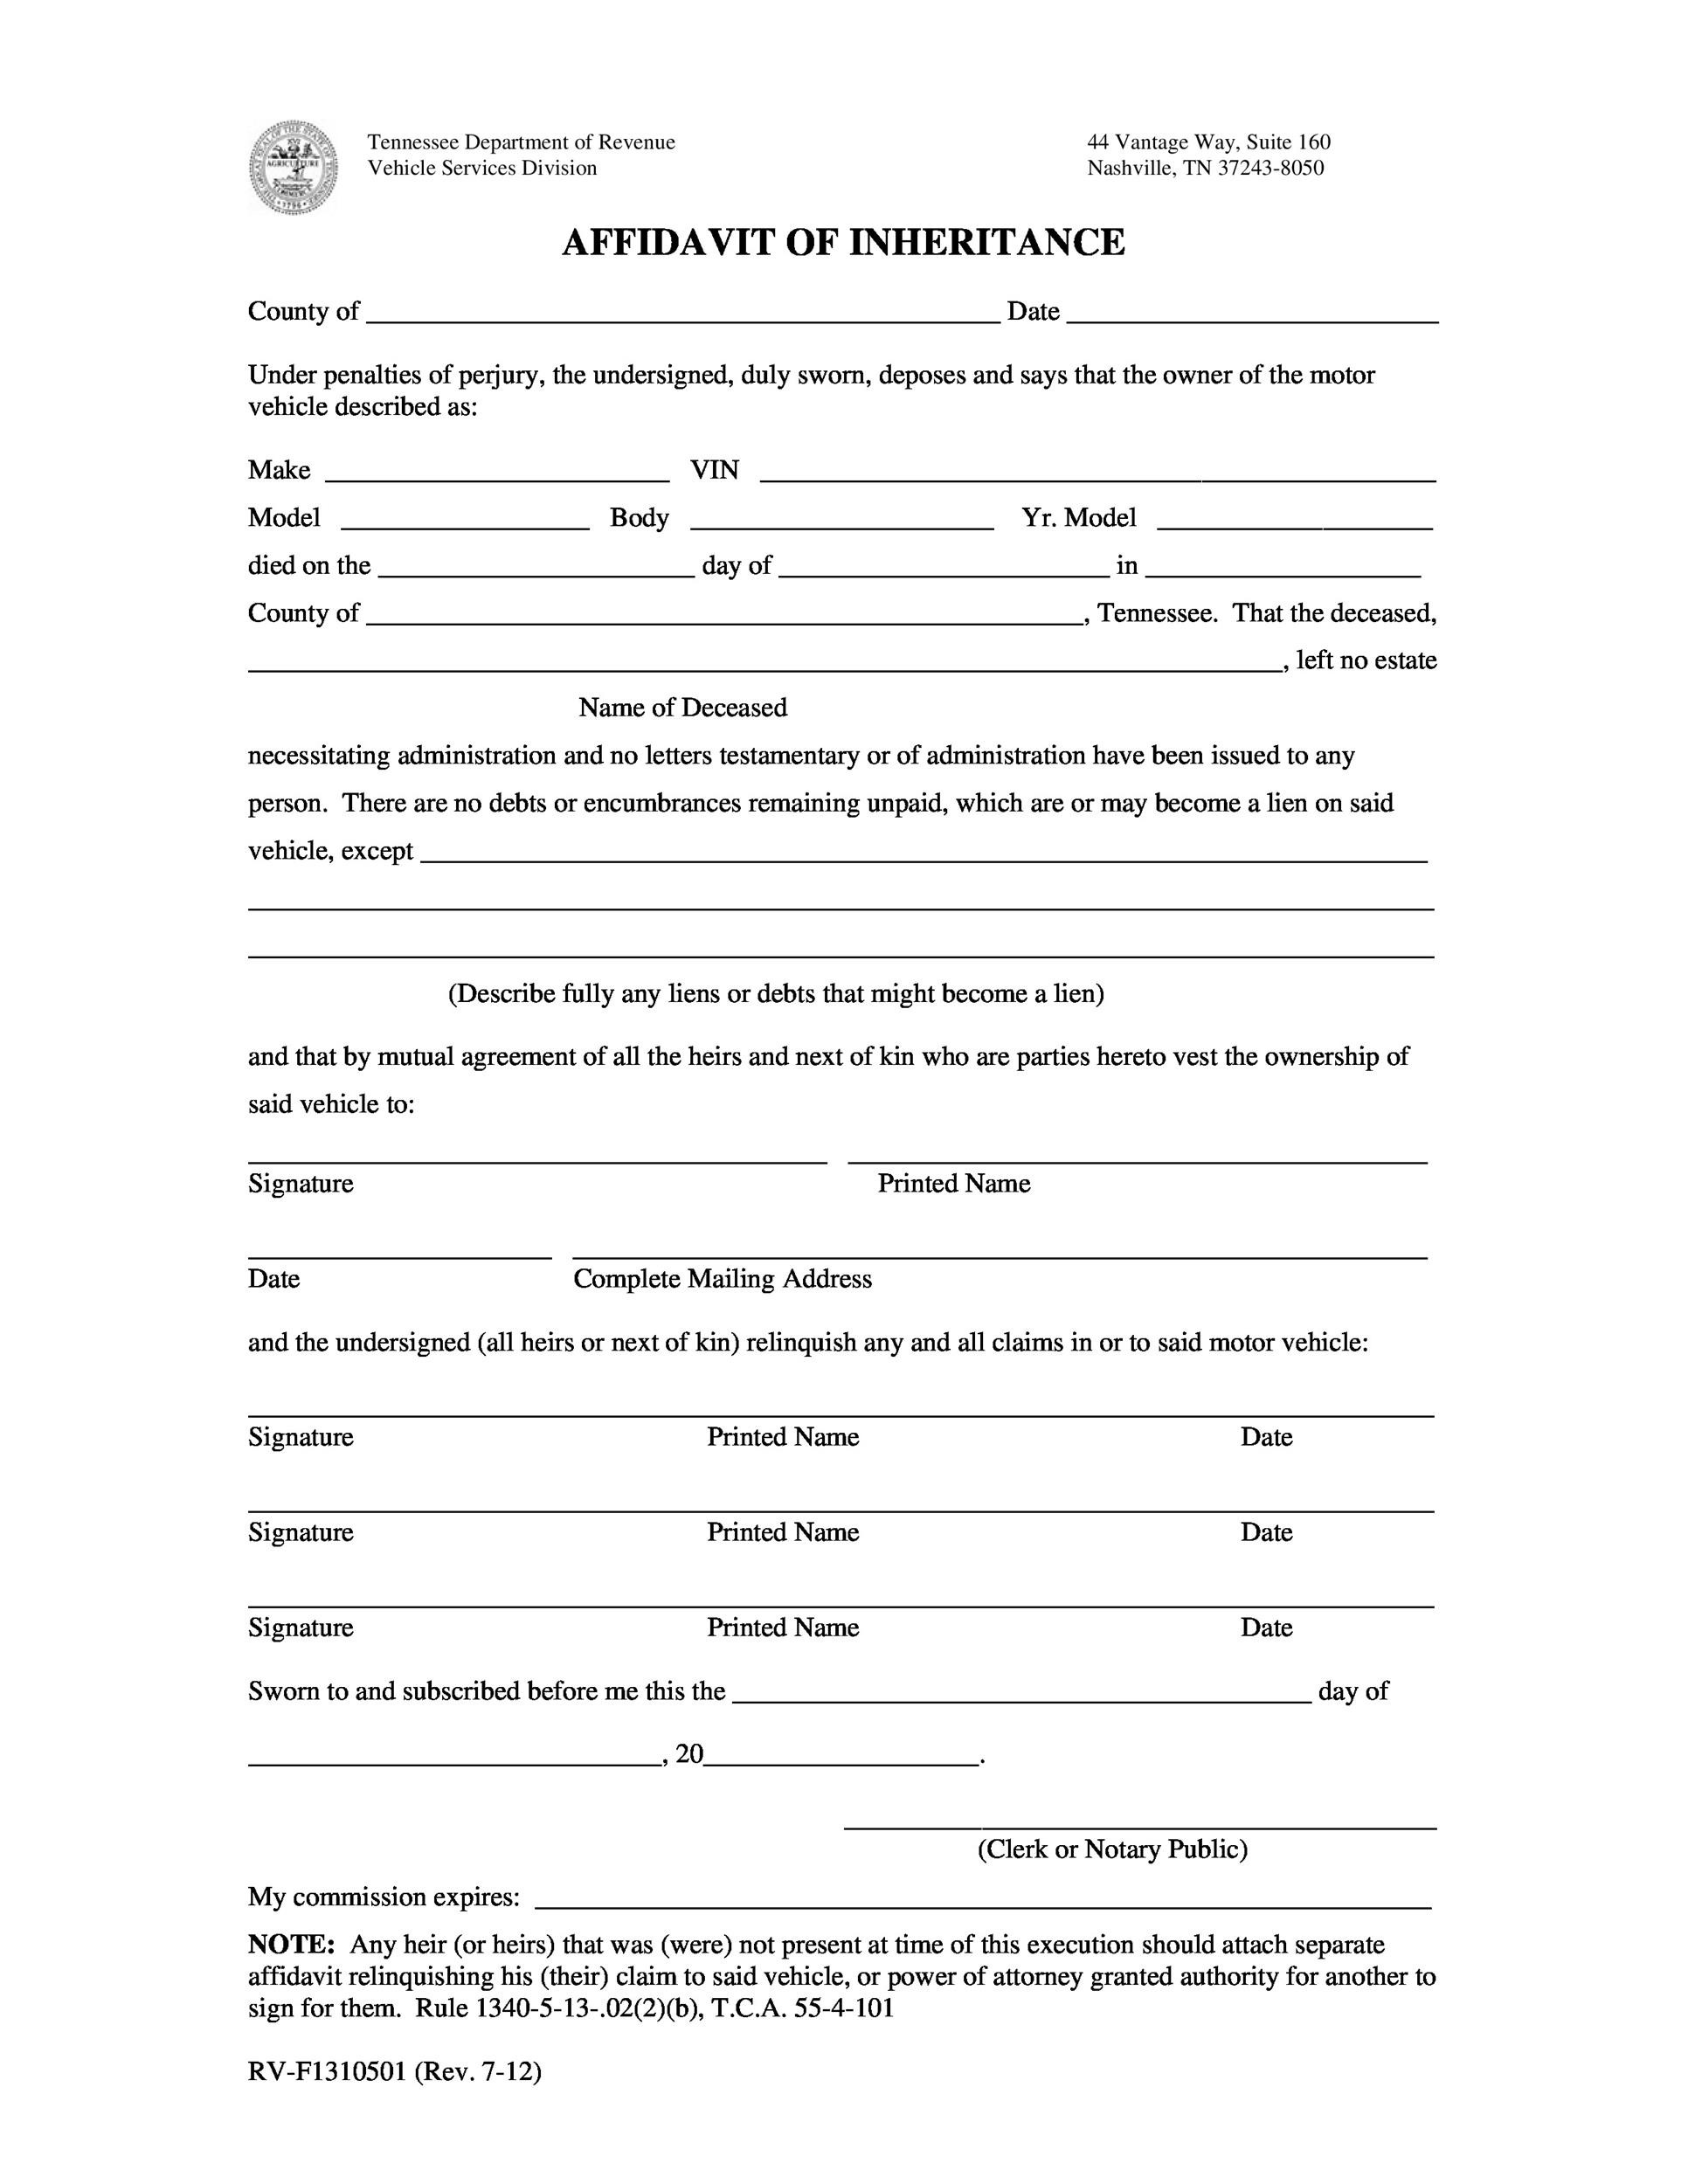 Good Affidavit Templates. Free Affidavit Form 21 Ideas Free Affidavit Form Template